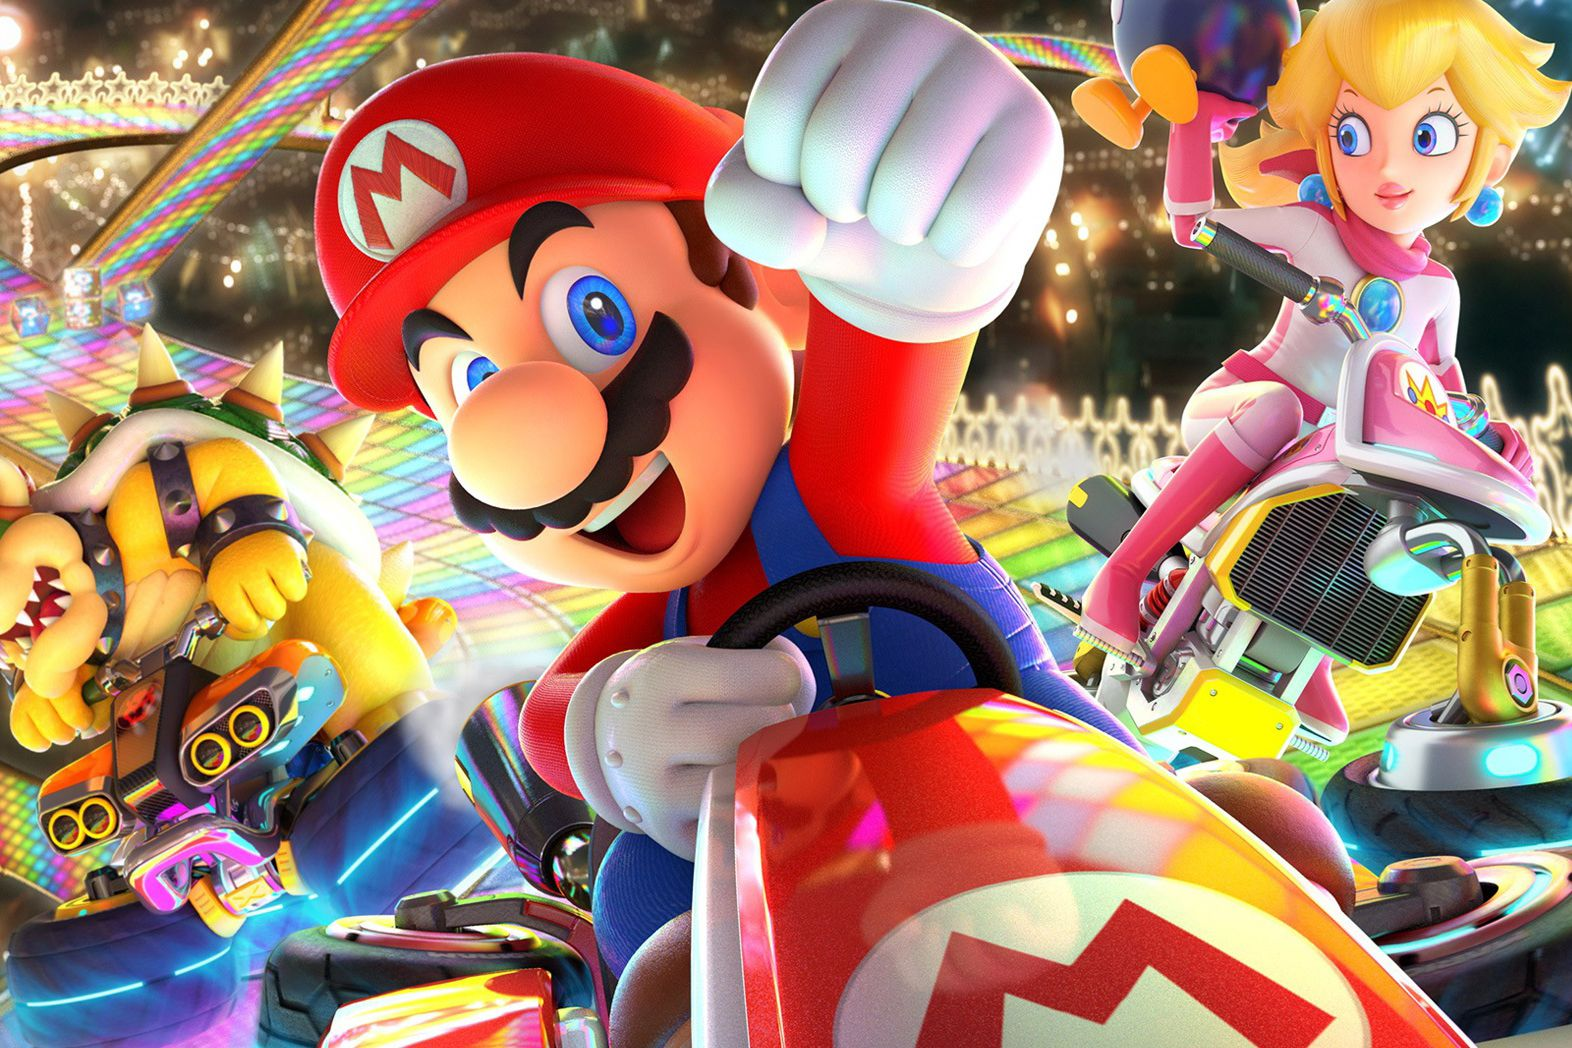 Nearly Half Of Nintendo Switch Owners Have Already Picked Up Mario Kart 8 Deluxe